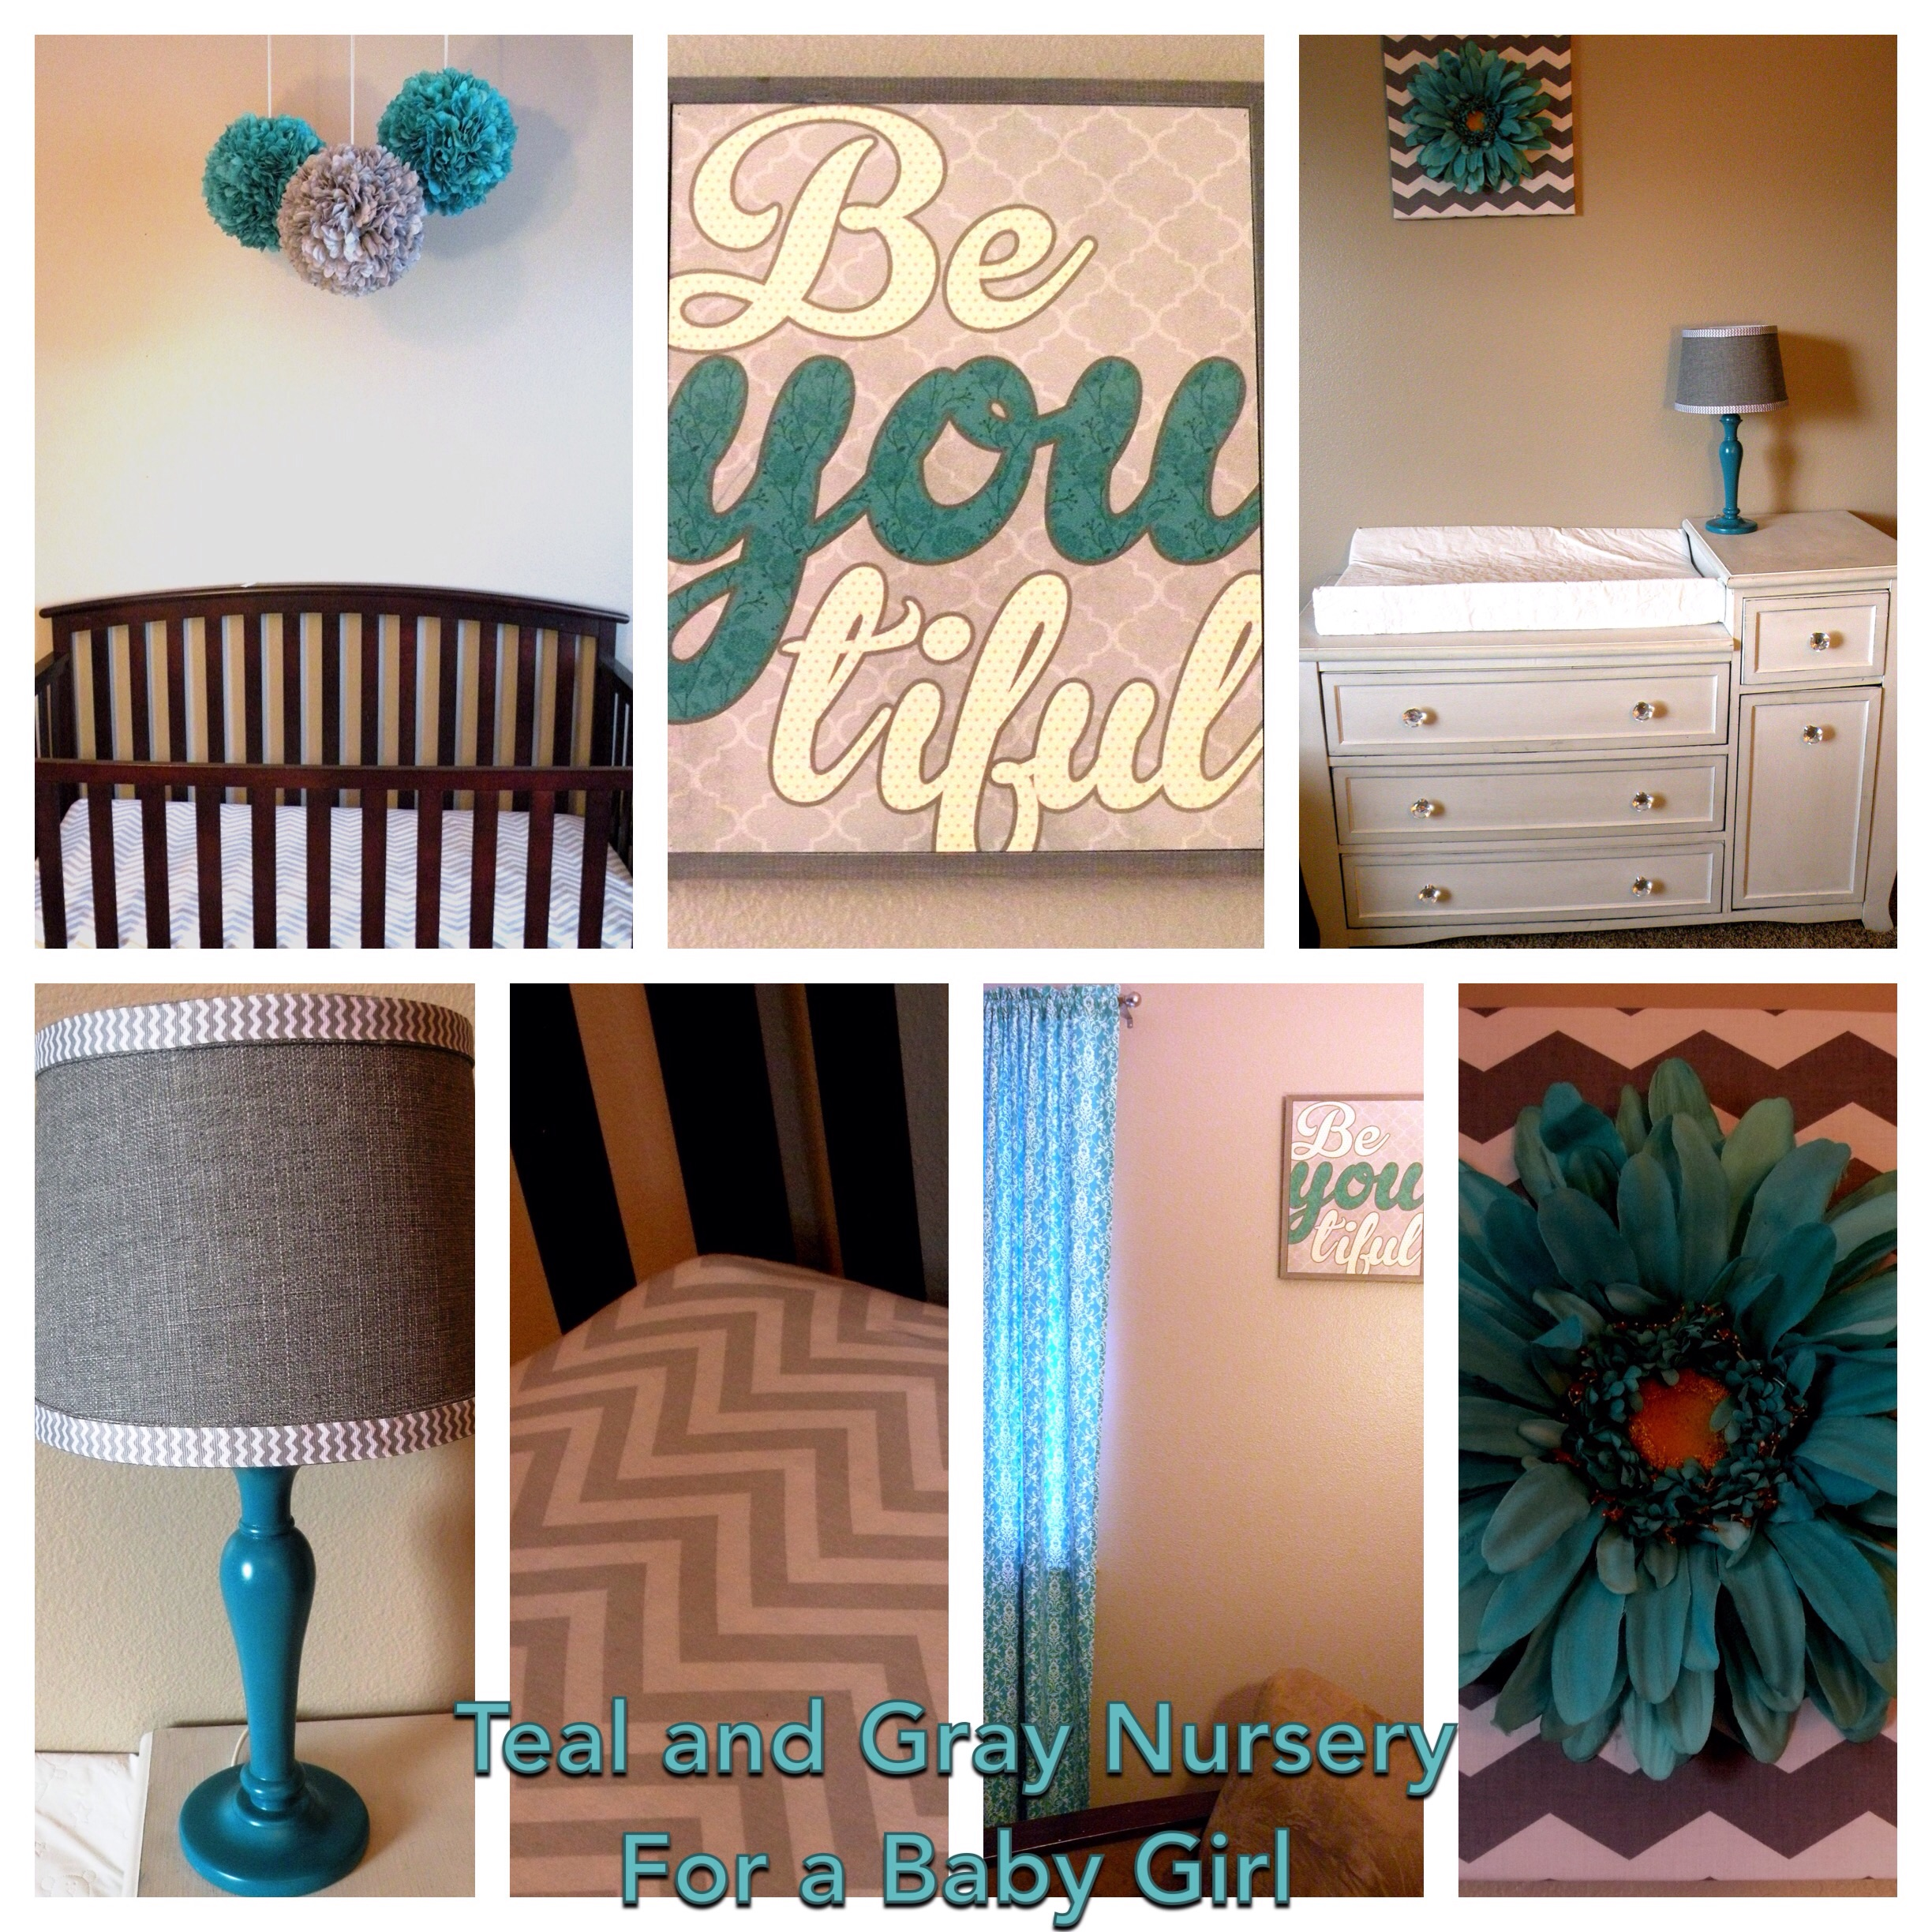 Teal and Gray Nursery for a Baby Girl